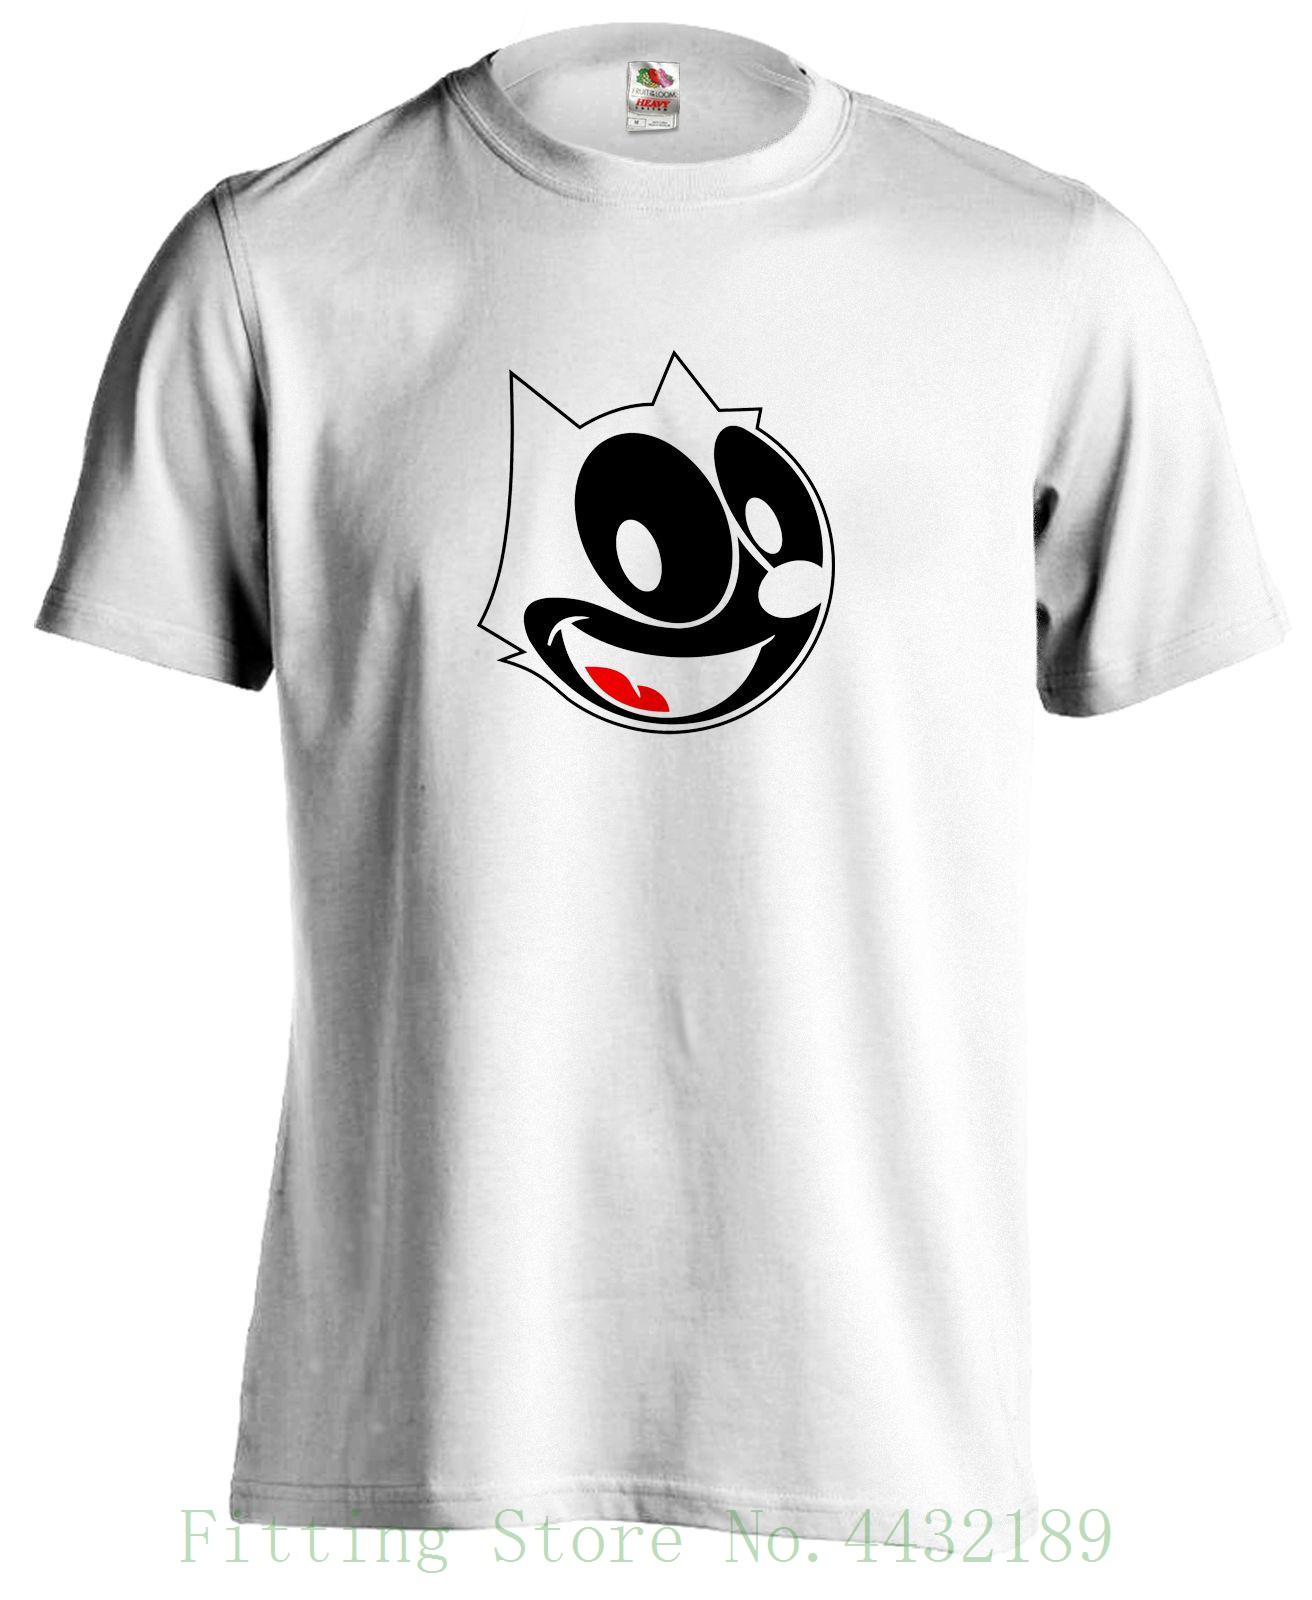 Felix The Cat Bd Dessin Anime Retro Vintage T Shirt T Shirt Hip Hop Novelty T Shirts Men 39 s Brand Clothing in T Shirts from Men 39 s Clothing